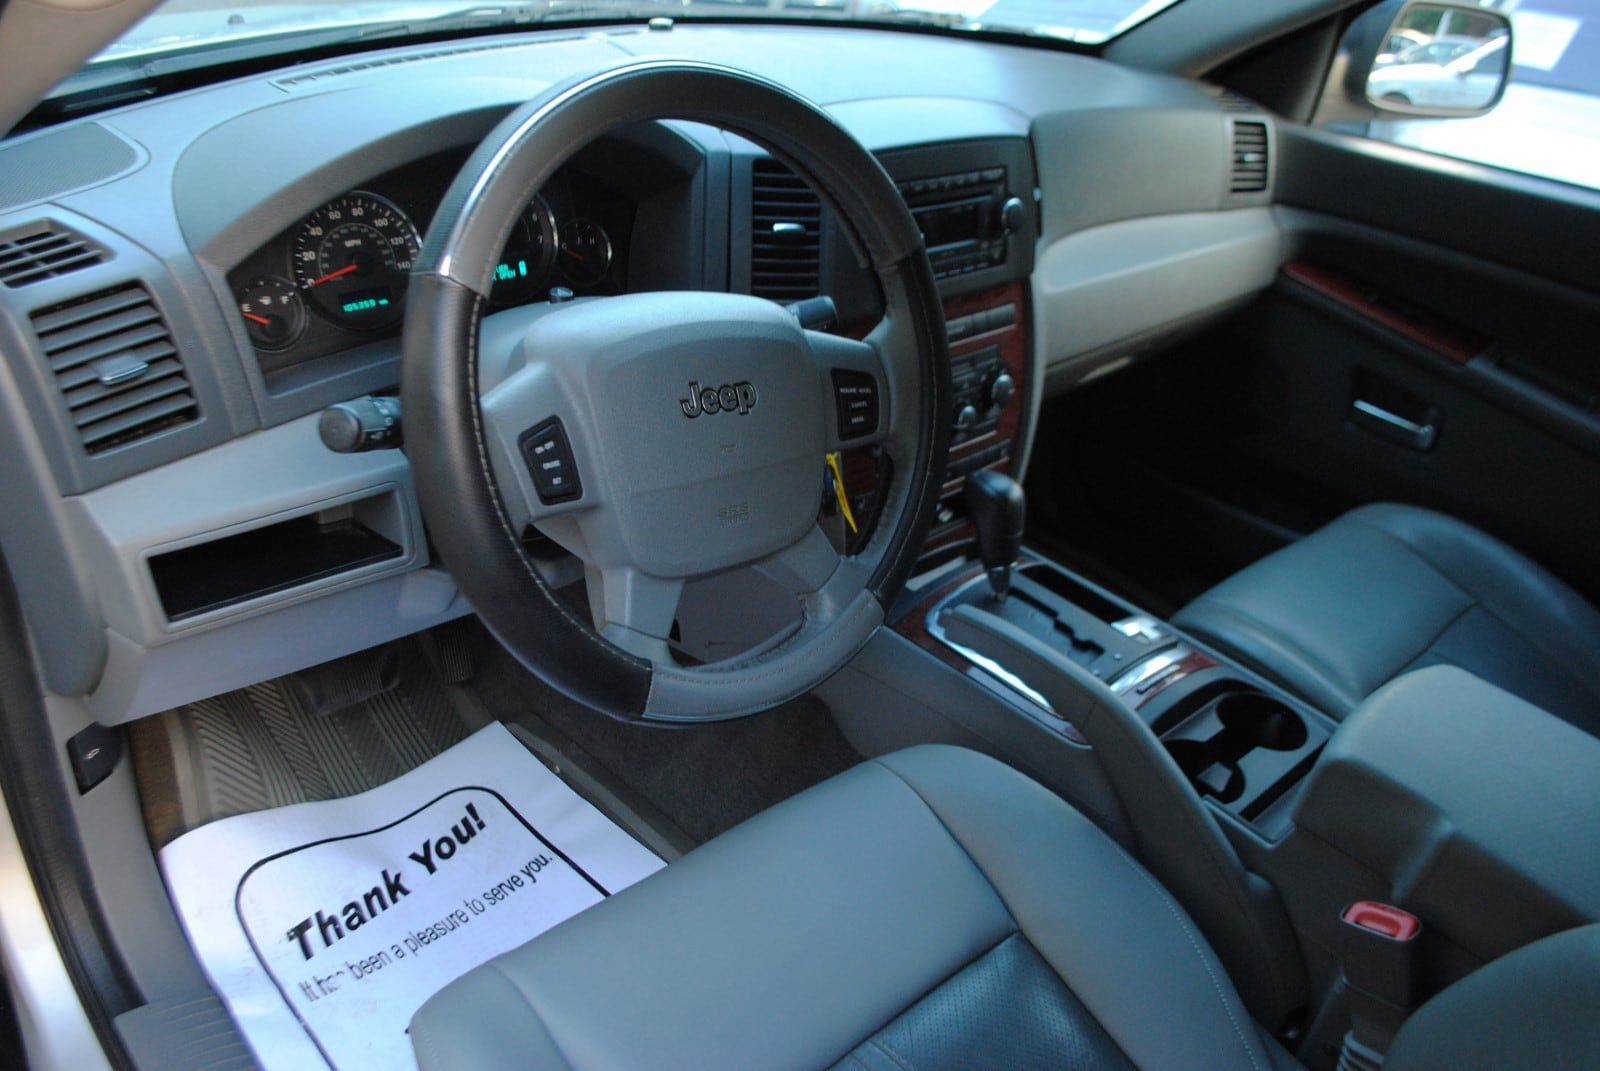 Used 2005 Jeep Grand Cherokee For Sale at Ramsey Corp  | VIN